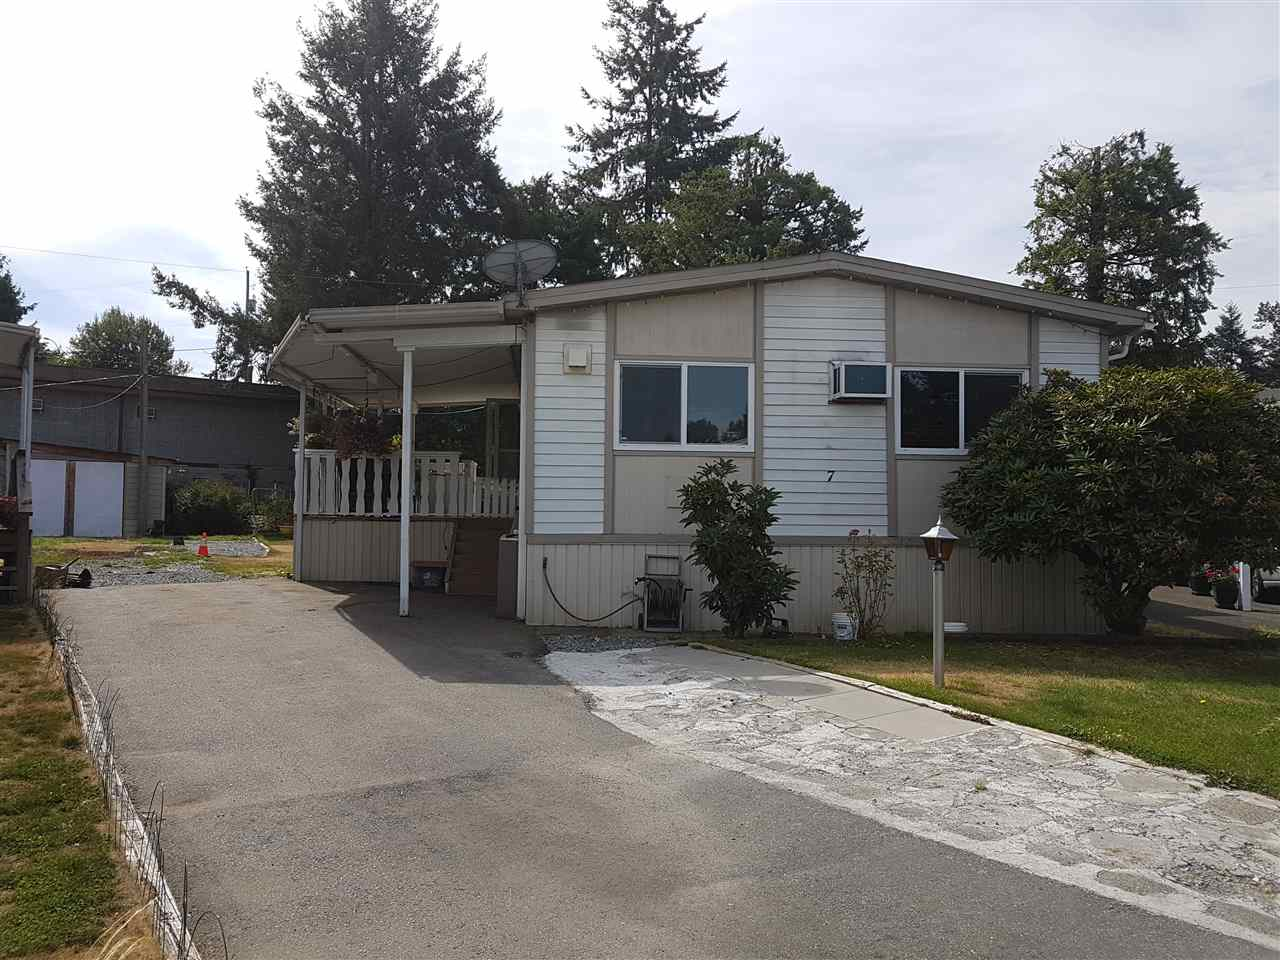 """PARADISE PARK! Well run and maintained adult oriented neighbourhood in West Abbotsford. 55+ age restriction and one small pet is welcome. 3 good sized bedrooms, 2 bathrooms. Nice recent updates include vinyl windows, laminate floors, 2"""" wide vertical blinds, appliances and paint. Detached shop has power and oversized lot (more than 8000 sq ft) could fit a bigger shop or ample parking and gardens. Not your typical """"pad"""". Great area is close to Gardner Park and High Street Mall. Quick and easy freeway access."""